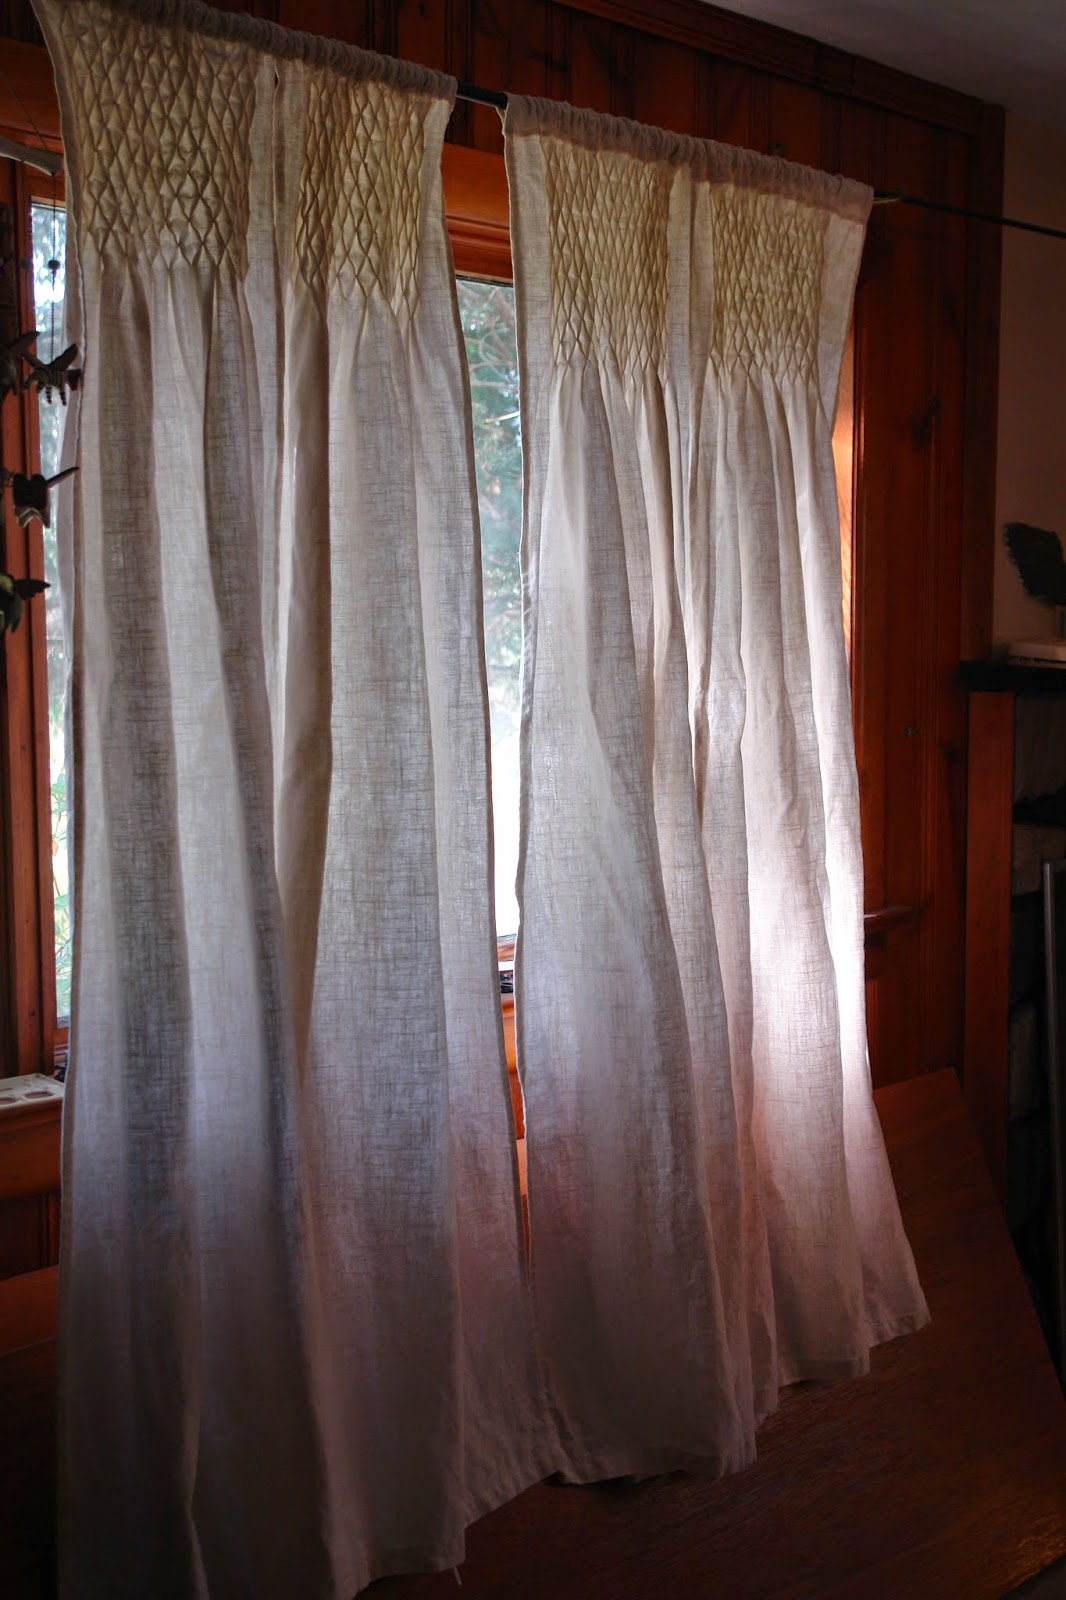 First attempt at curtain smocking. This is an upside down view of the ...